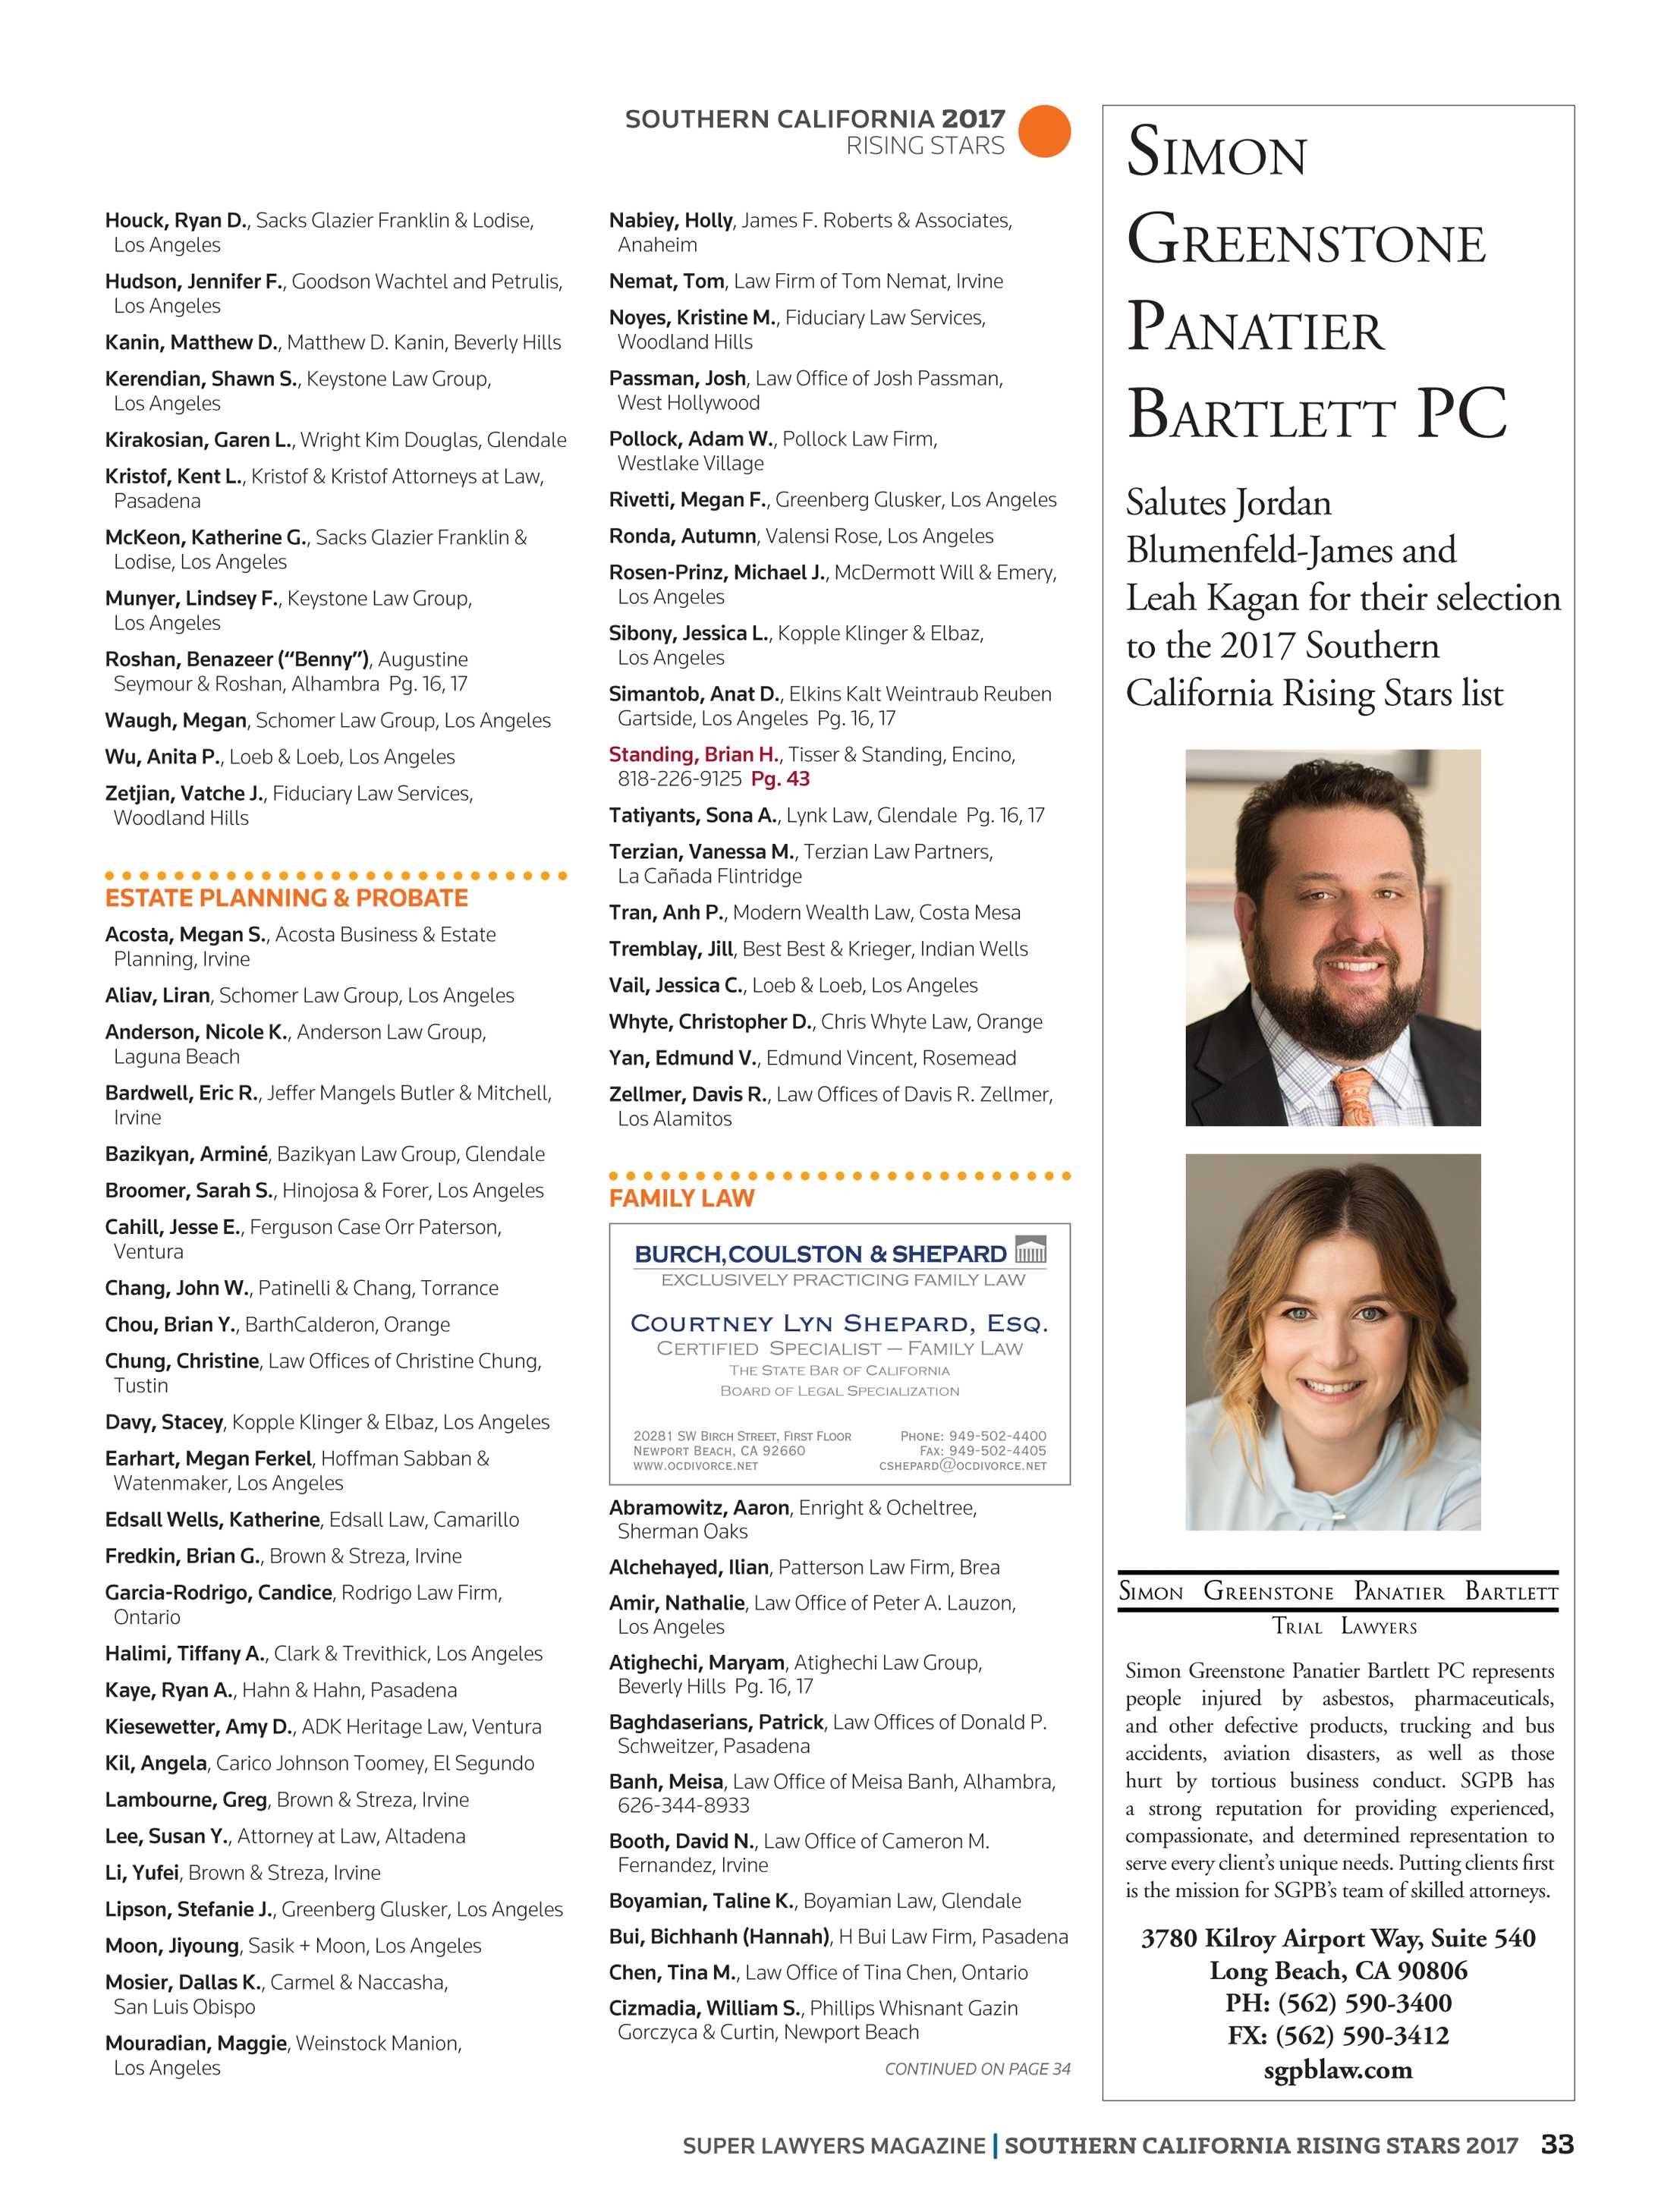 Christian Materne Und Judith Williams Super Lawyers Southern California Rising Stars 2017 Page 33